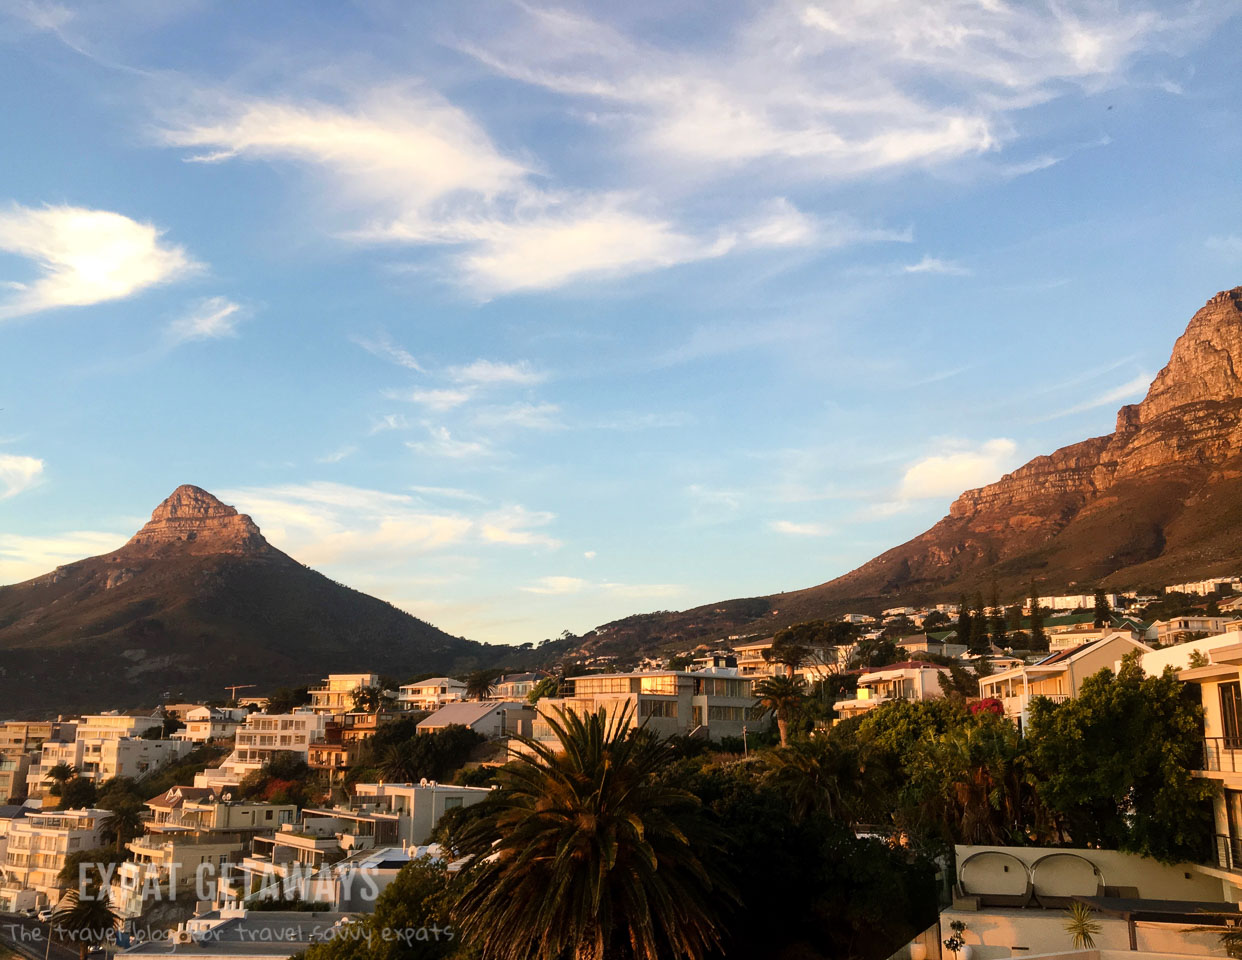 The view from our wonderful apartment in Camps Bay. Ocean views from our balcony and spectacular sunsets with Lions Head as a backdrop. Expat Getaways One Week in Cape Town, South Africa.